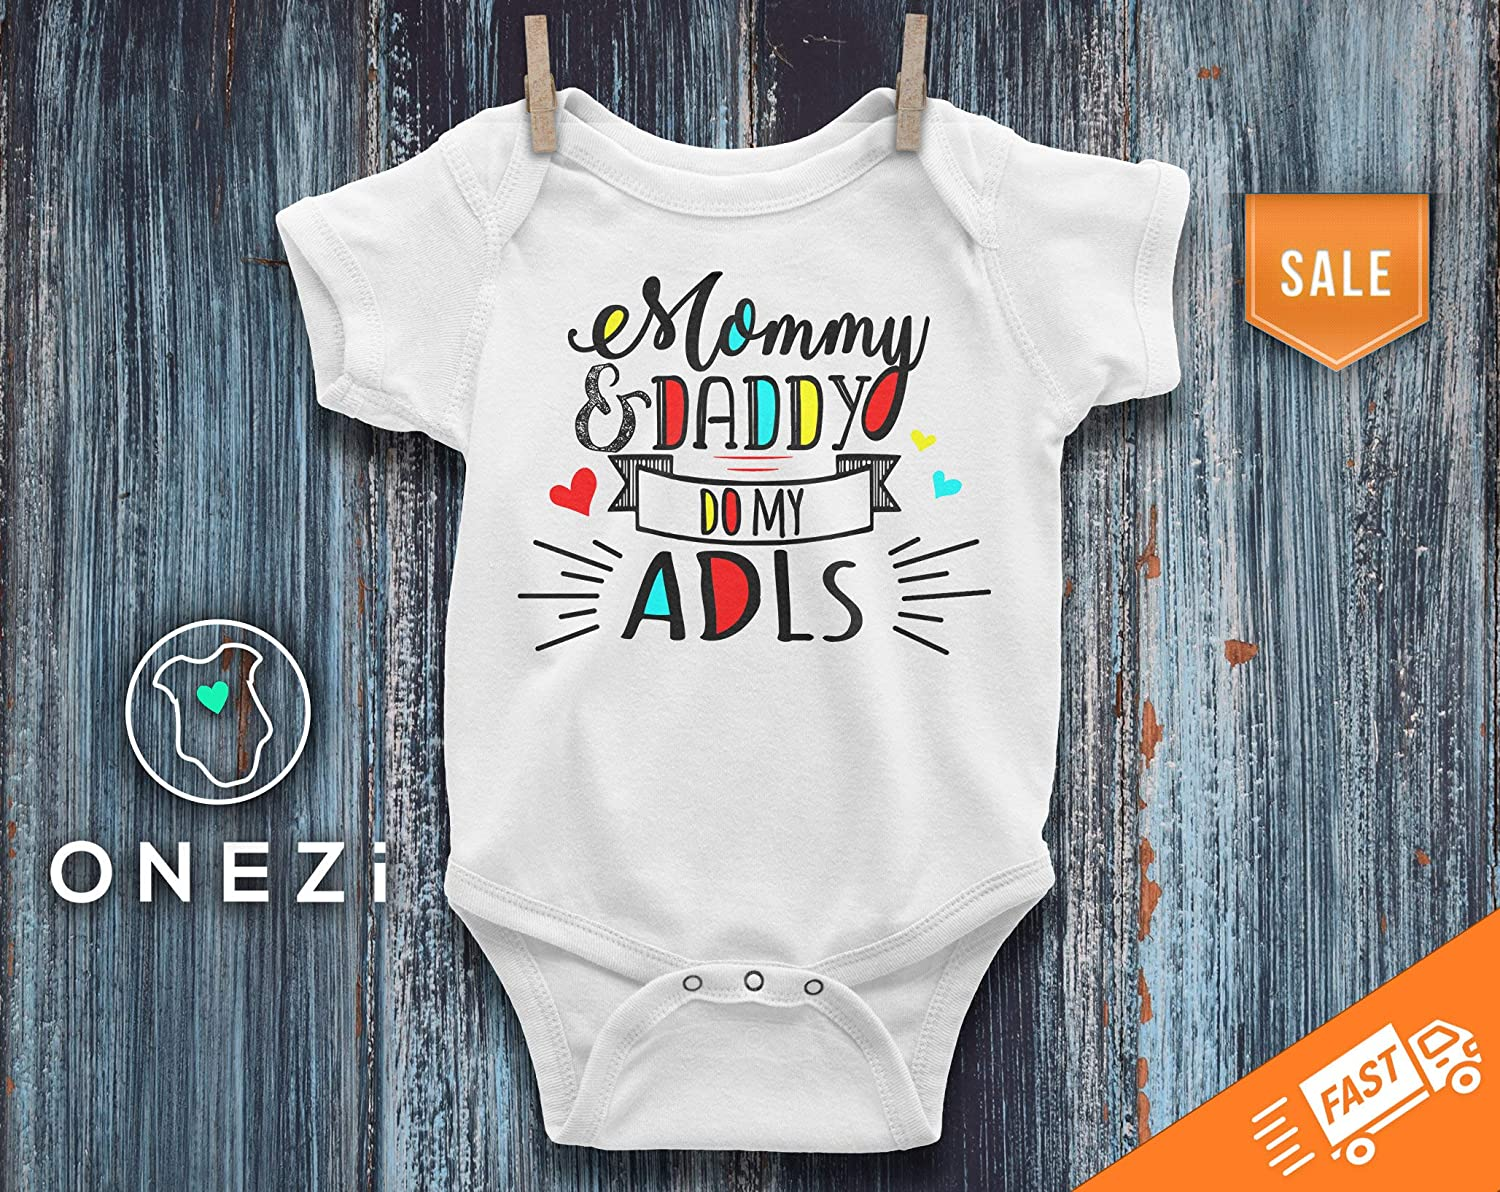 c8a877f7e Occupational Therapy Baby Onesie